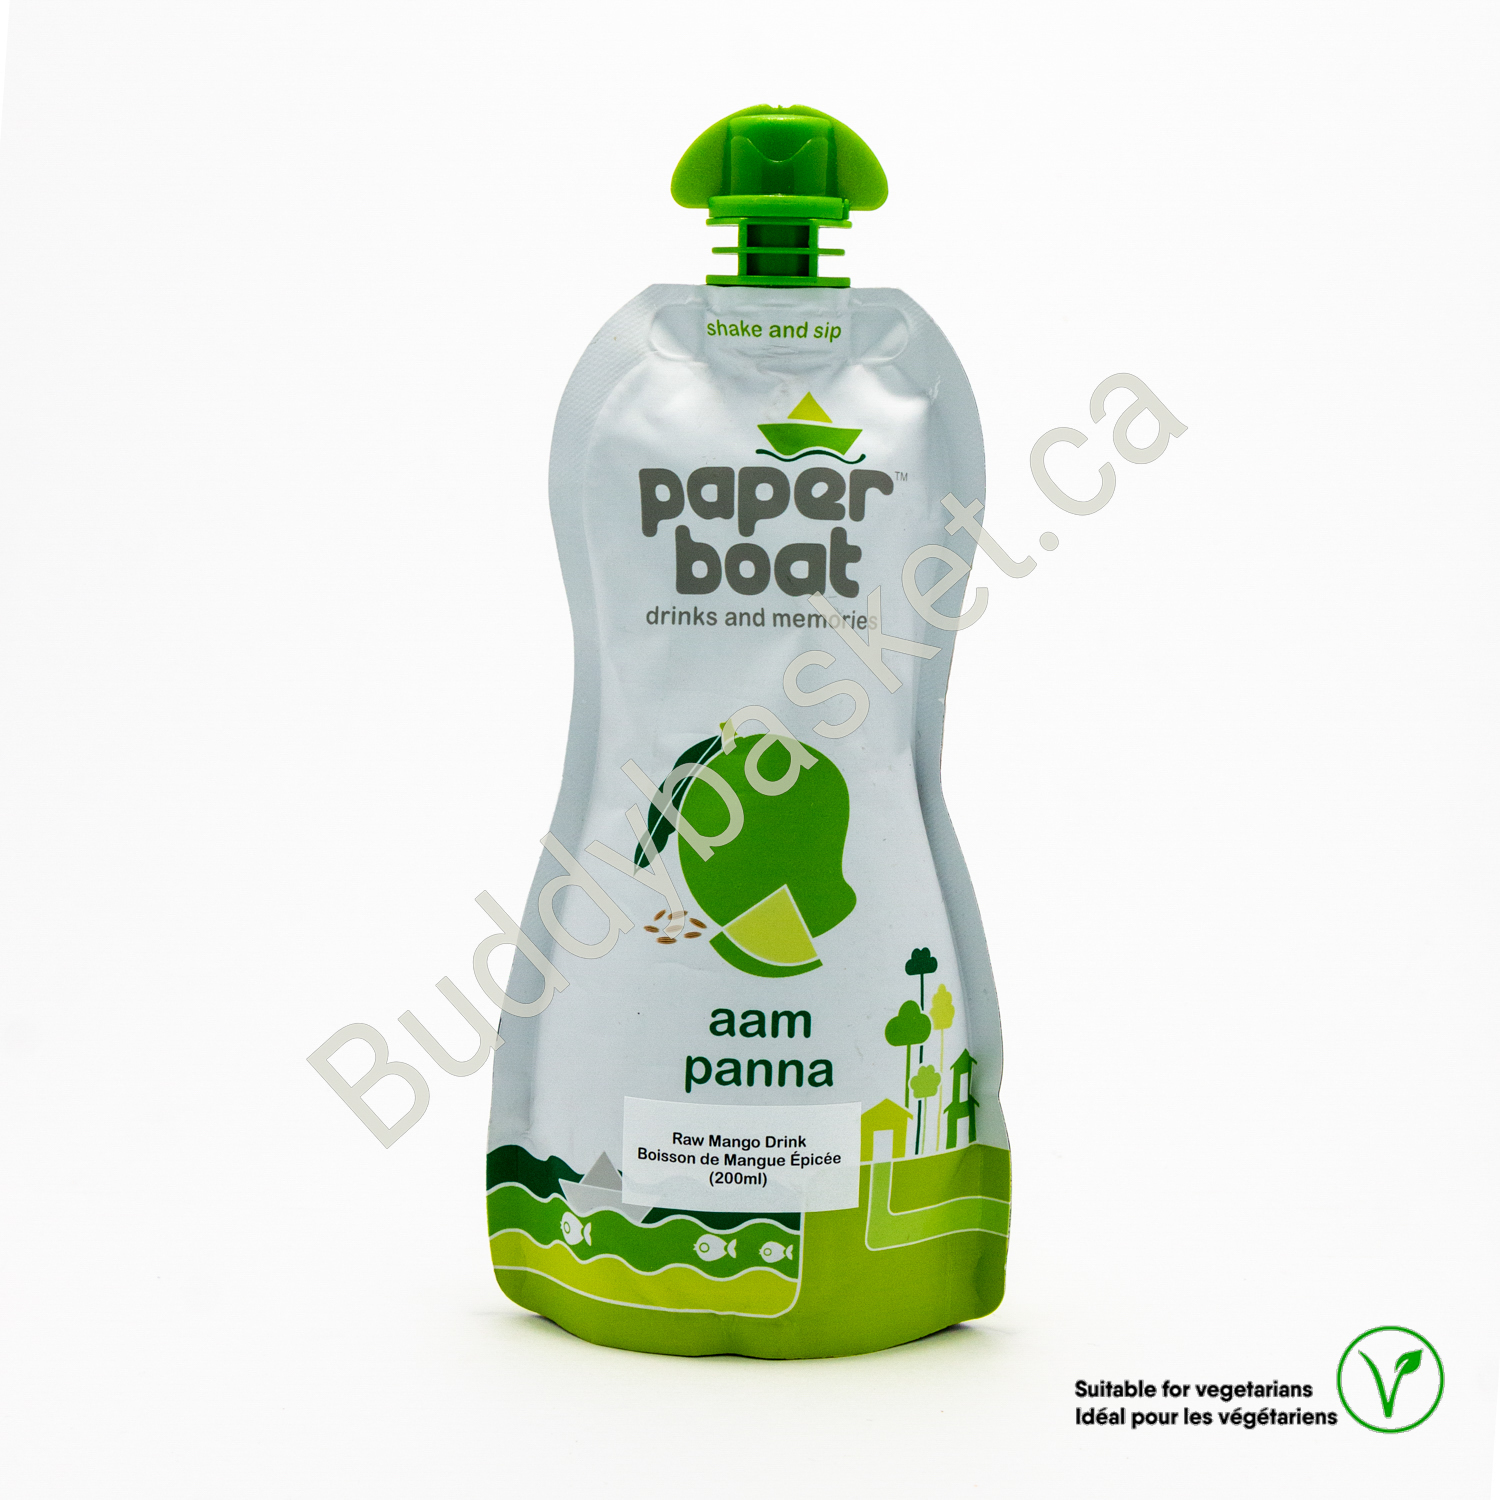 Paper boat aam panna 200ml